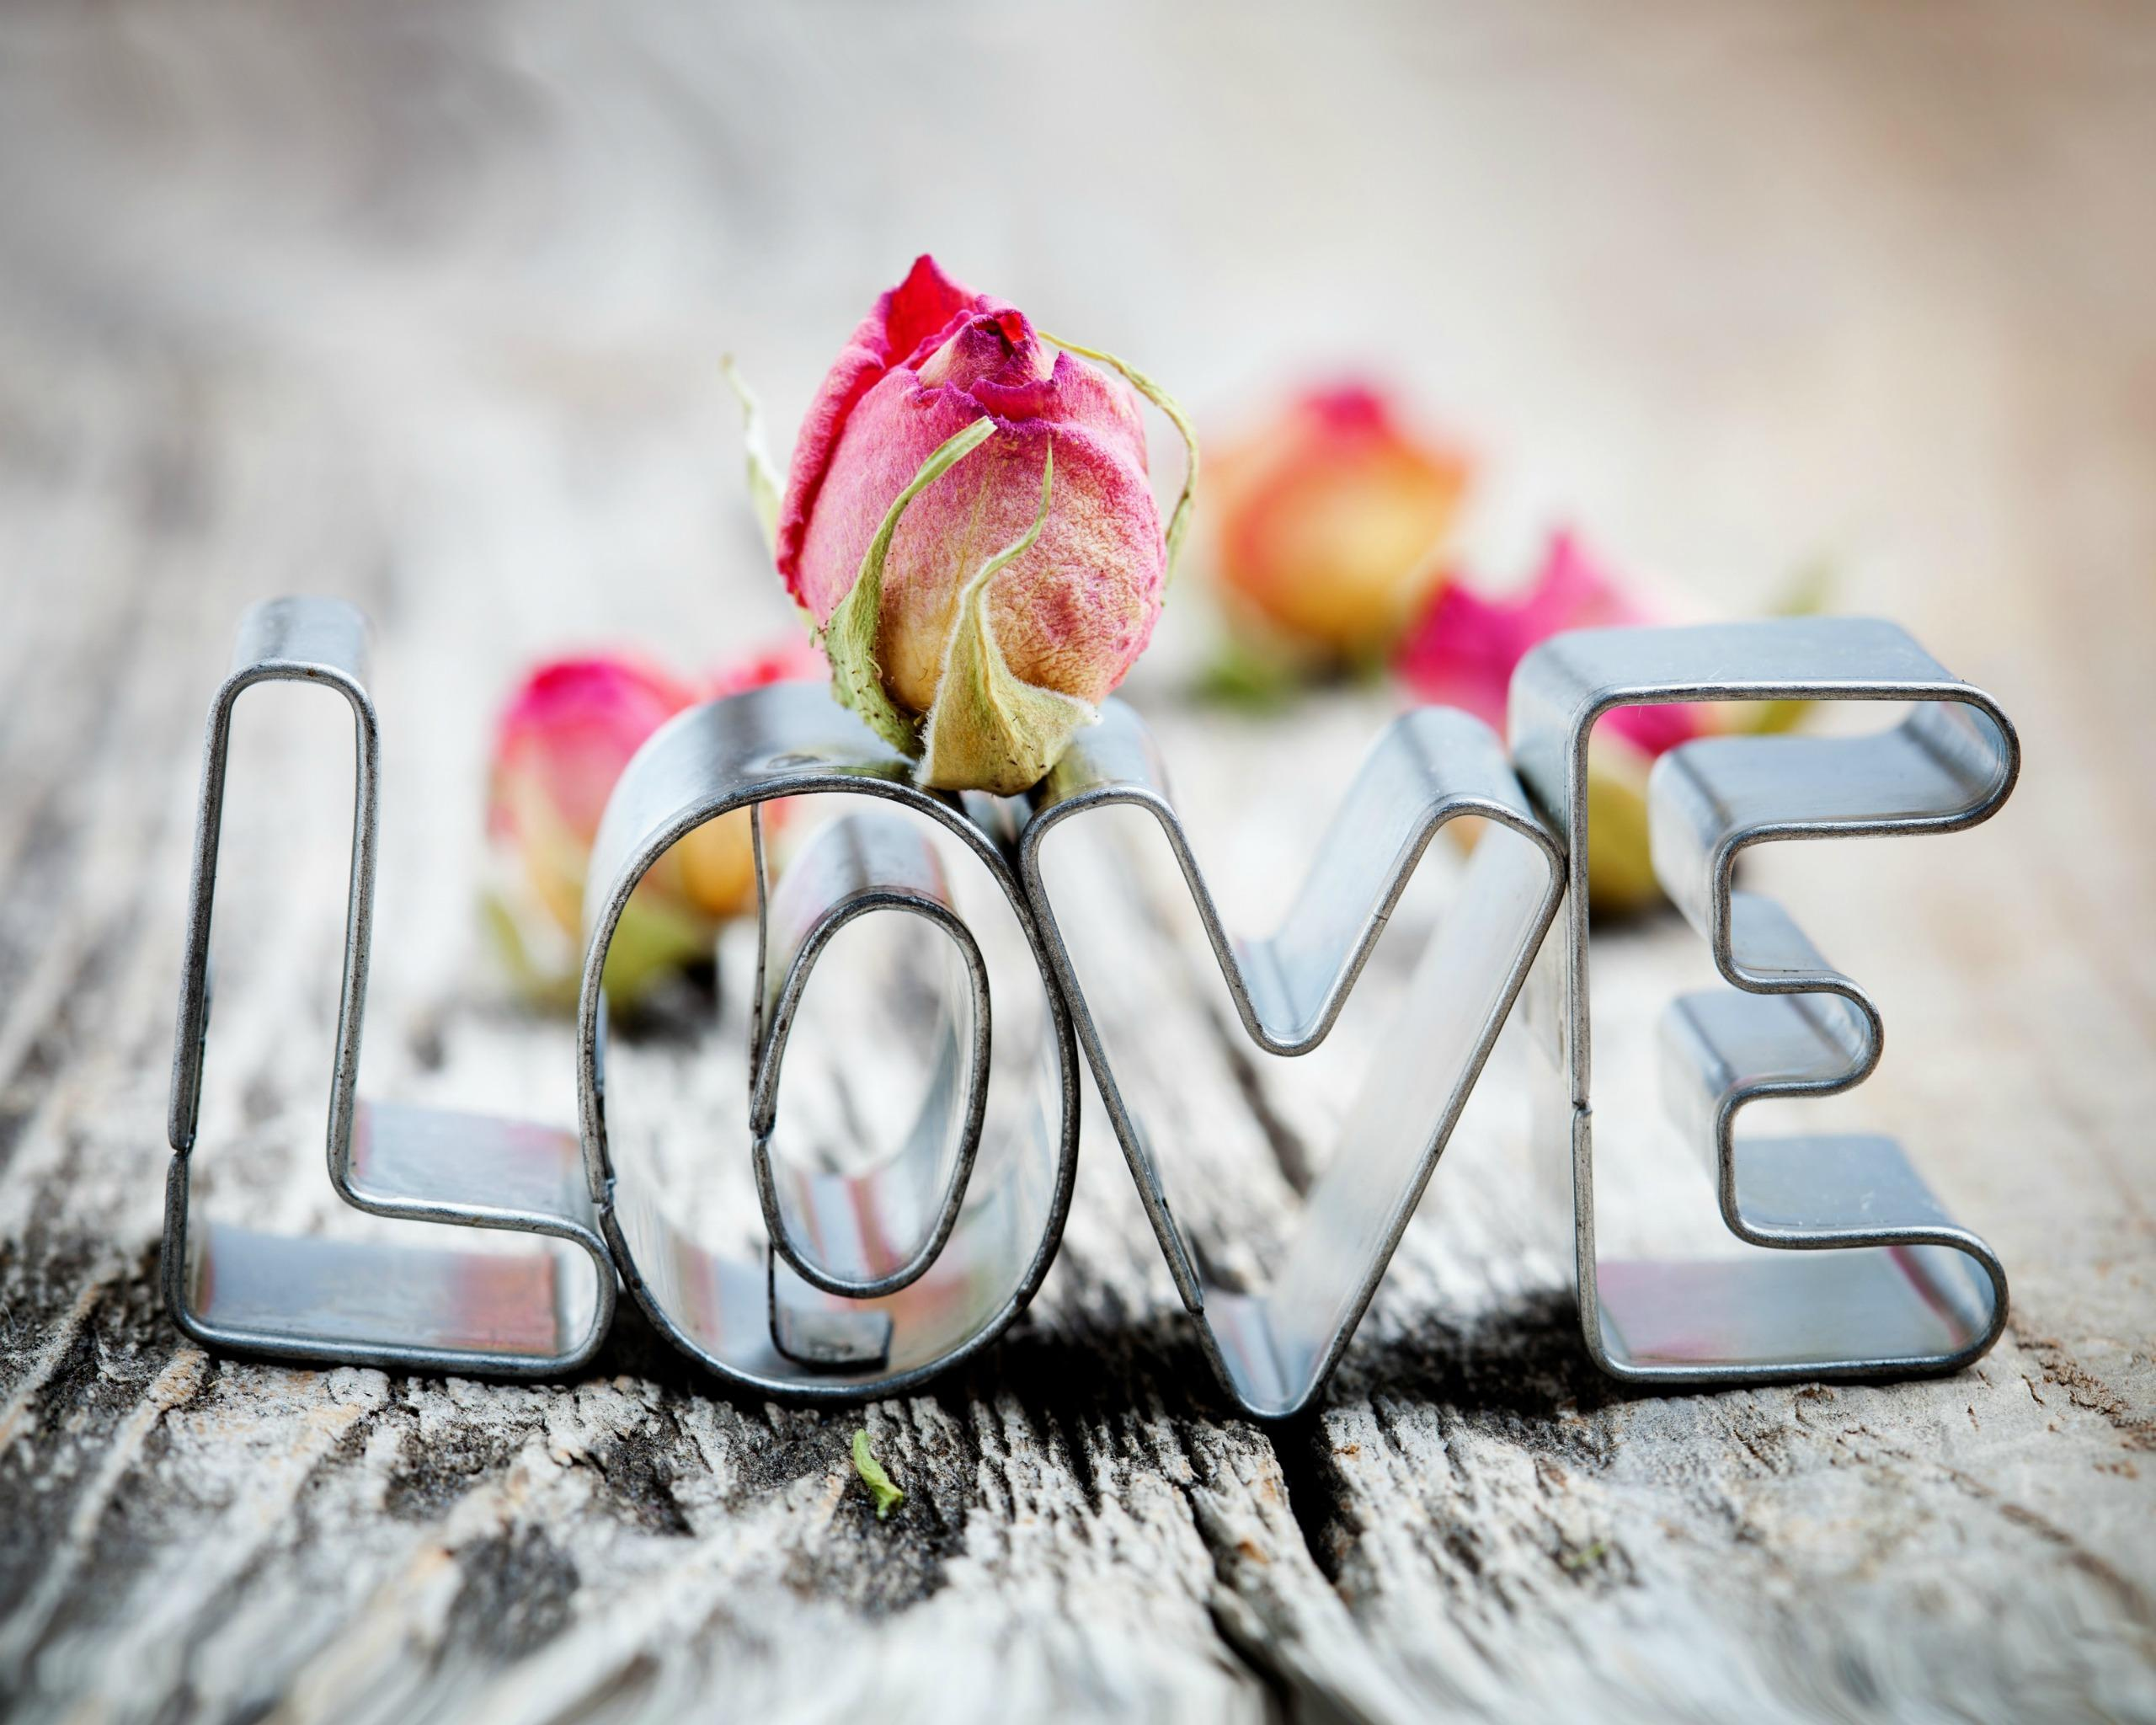 Hd Wallpapers For Pc Full Screen Free Download Love